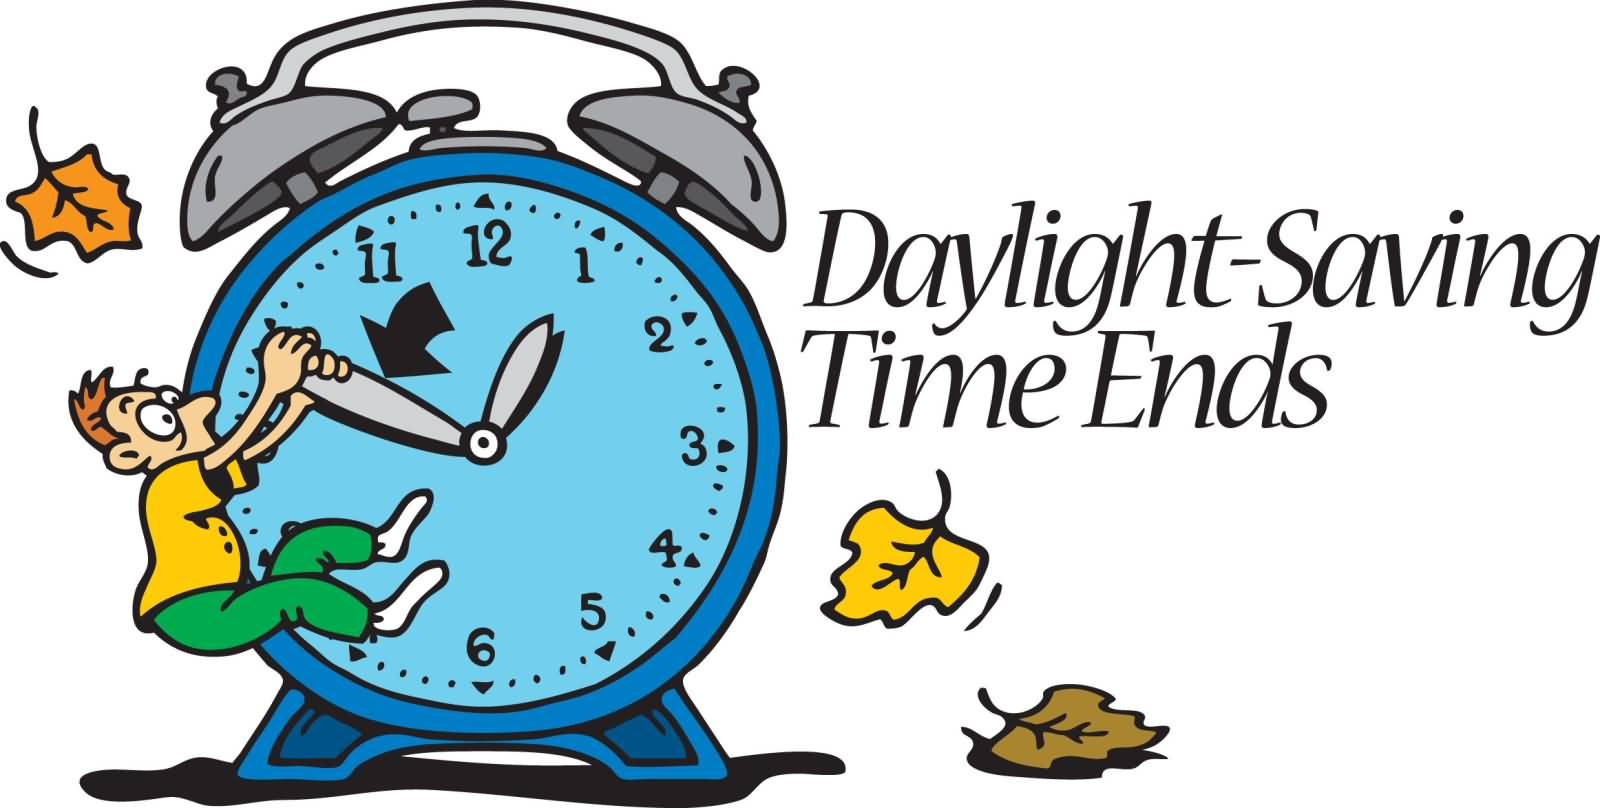 End of daylight savings time clip art.